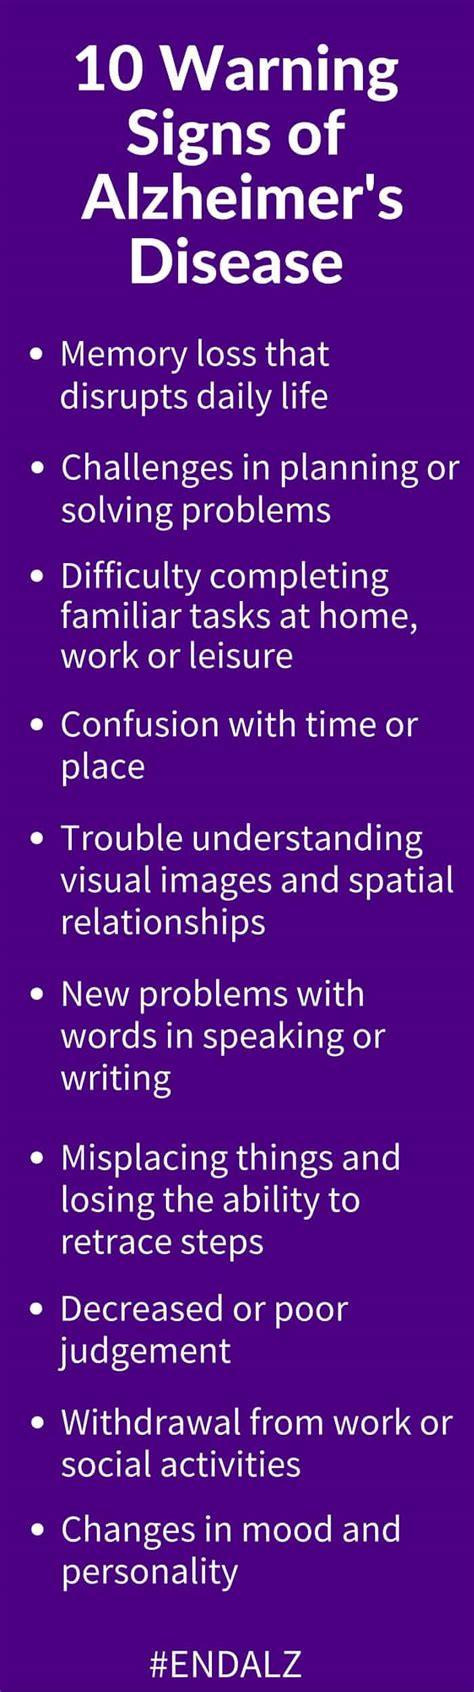 Alzheimer's & Brain Awareness Month  Jeanette's Healthy. Suffocation Signs. Access Signs. Rest Room Signs. Sign Board Signs. Kody Rock Signs. Happiness Signs. Tremors Signs. Lymphatic Signs